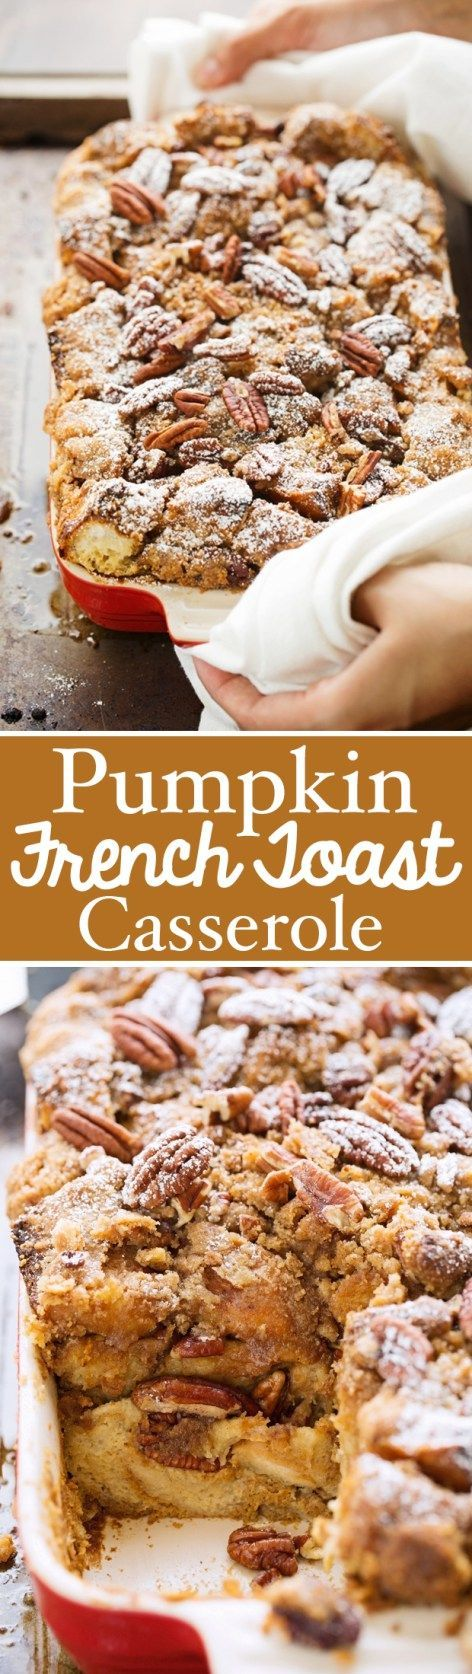 Pumpkin French Toast Casserole - This recipe is super friendly to make ahead of time and perfect for entertaining brunch guests of for Saturday morning breakfast!